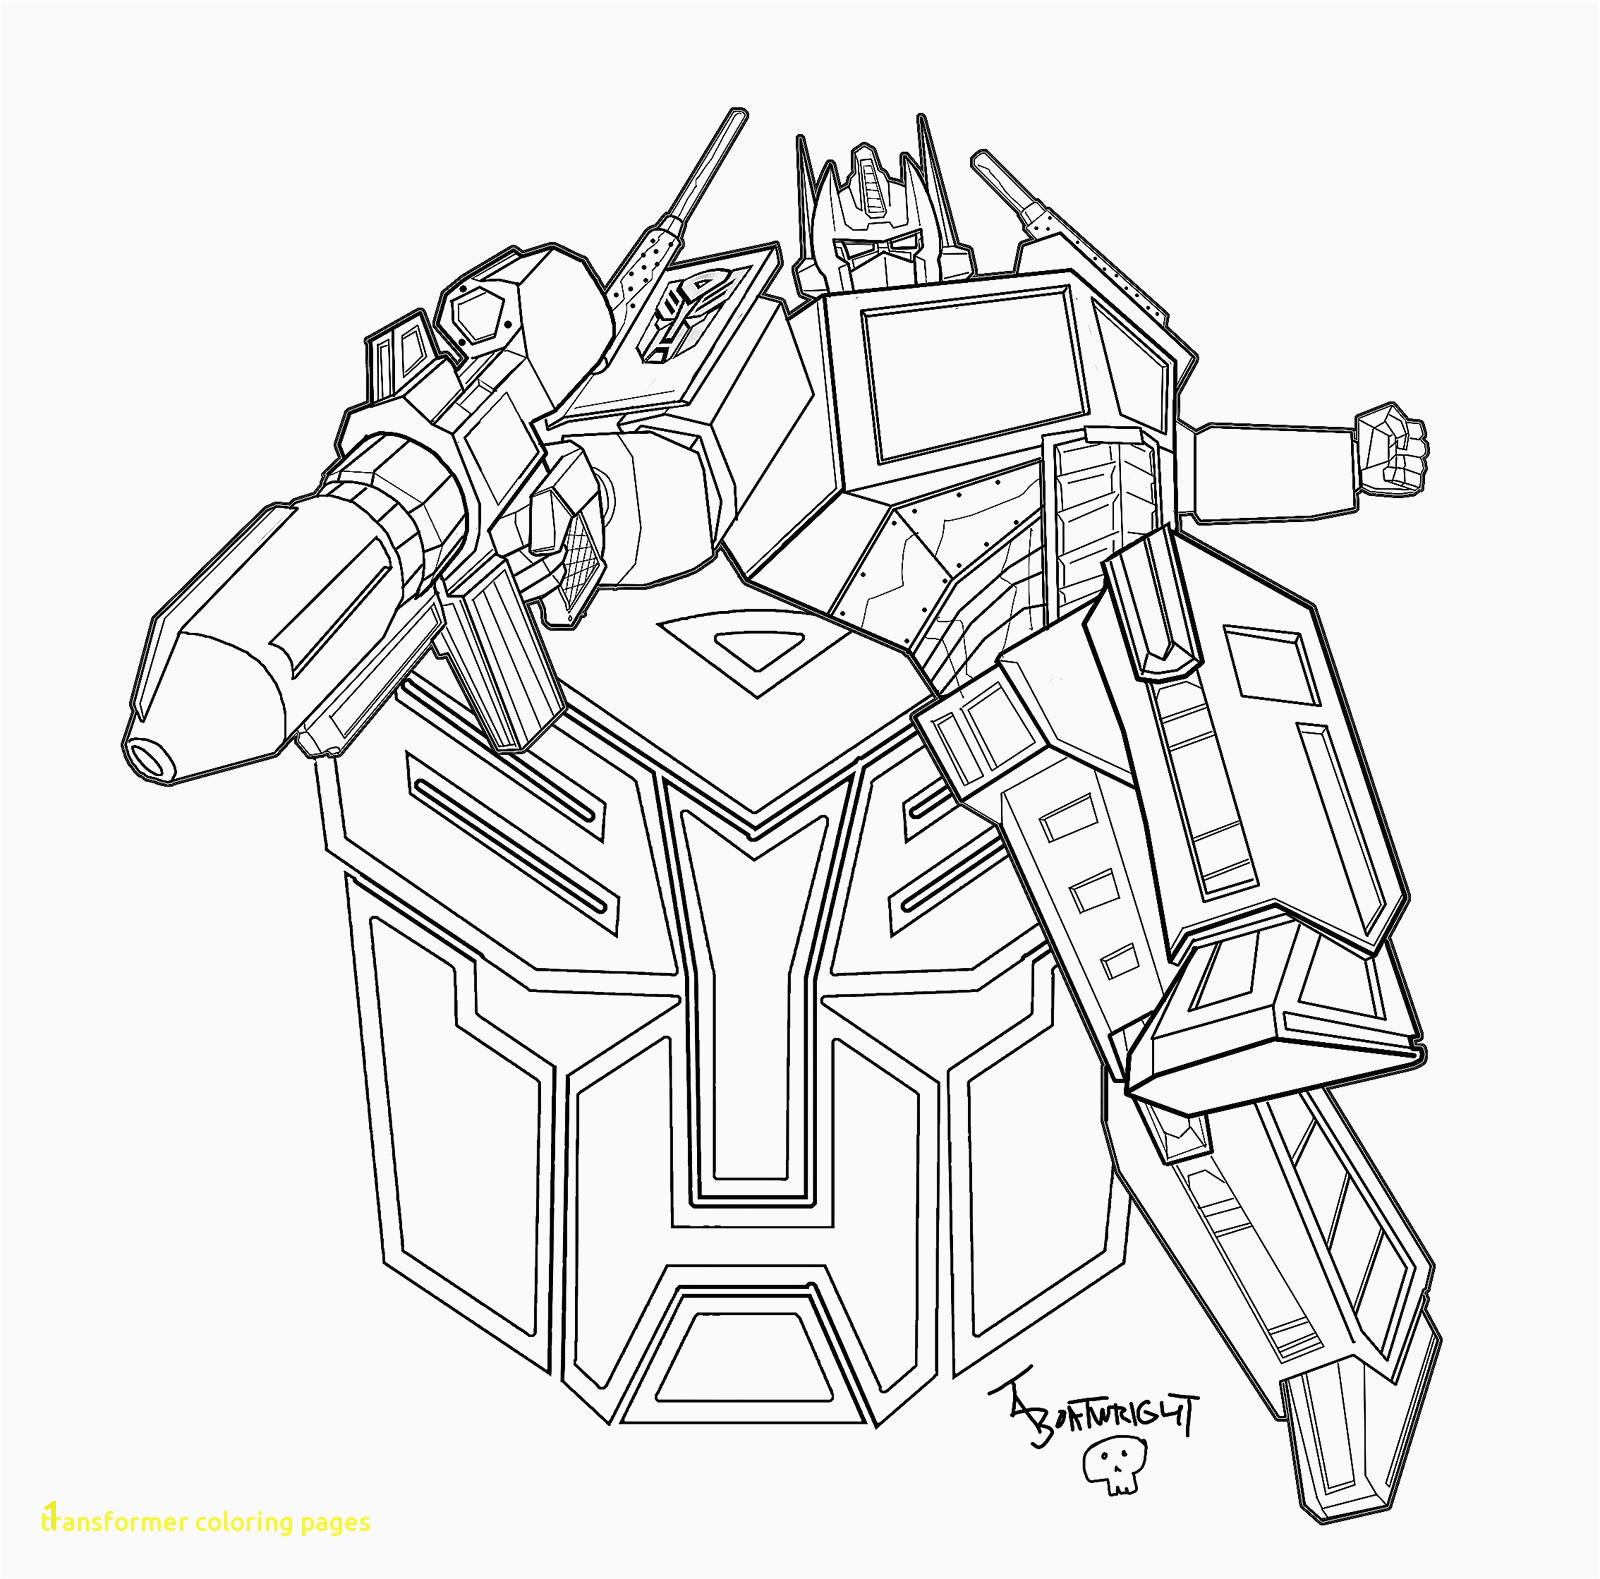 Transformer Coloring Pages Optimus Prime Coloring Pages Coloring Inspirierend Transformers Ausmalbilder Optimus Prime